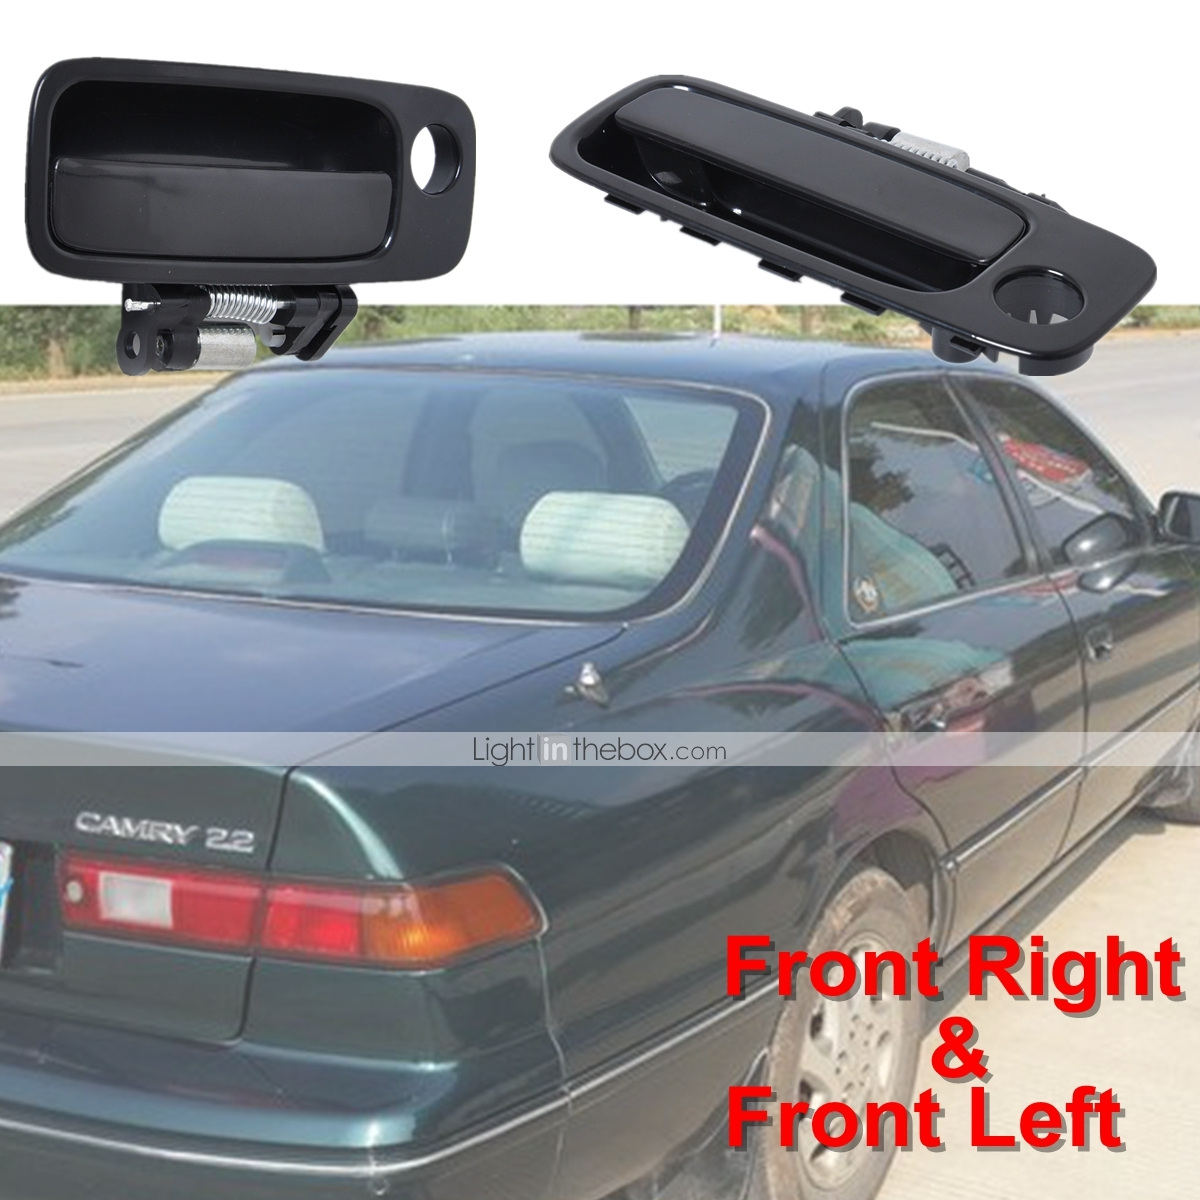 NEW RIGHT DOOR MIRROR FITS TOYOTA CAMRY 1997-2001 POWER NON-HEATED 3 HEAD 3 PINS